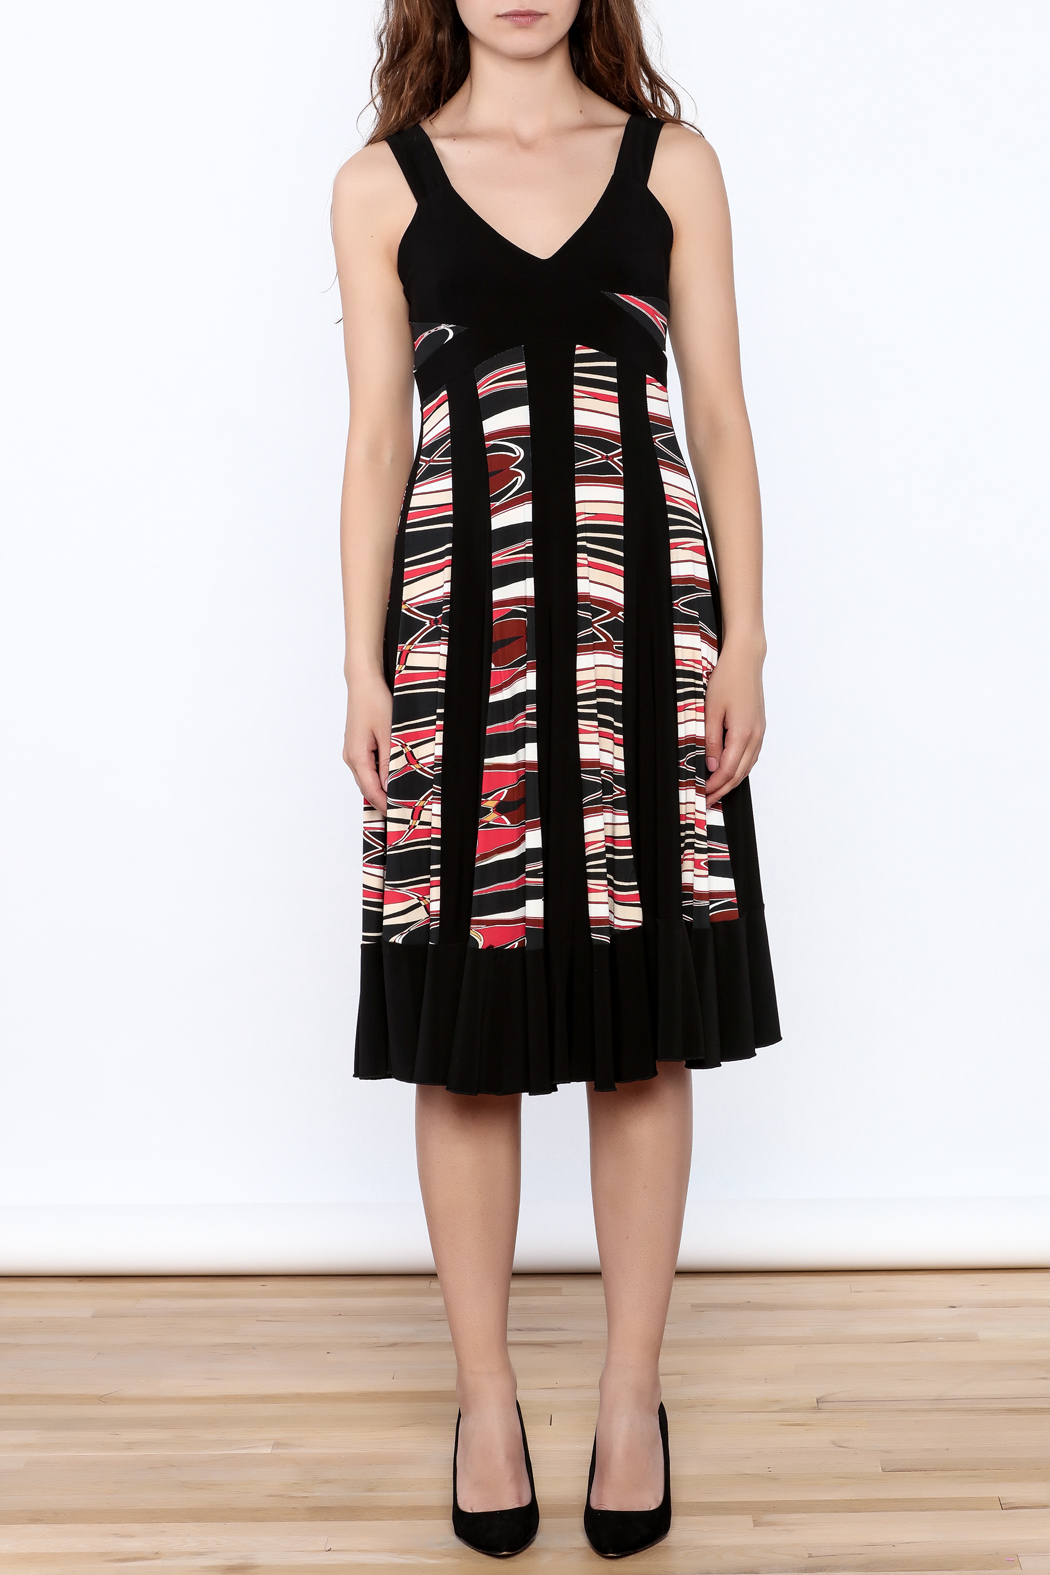 Sharon Max Black Printed Midi Dress - Front Cropped Image